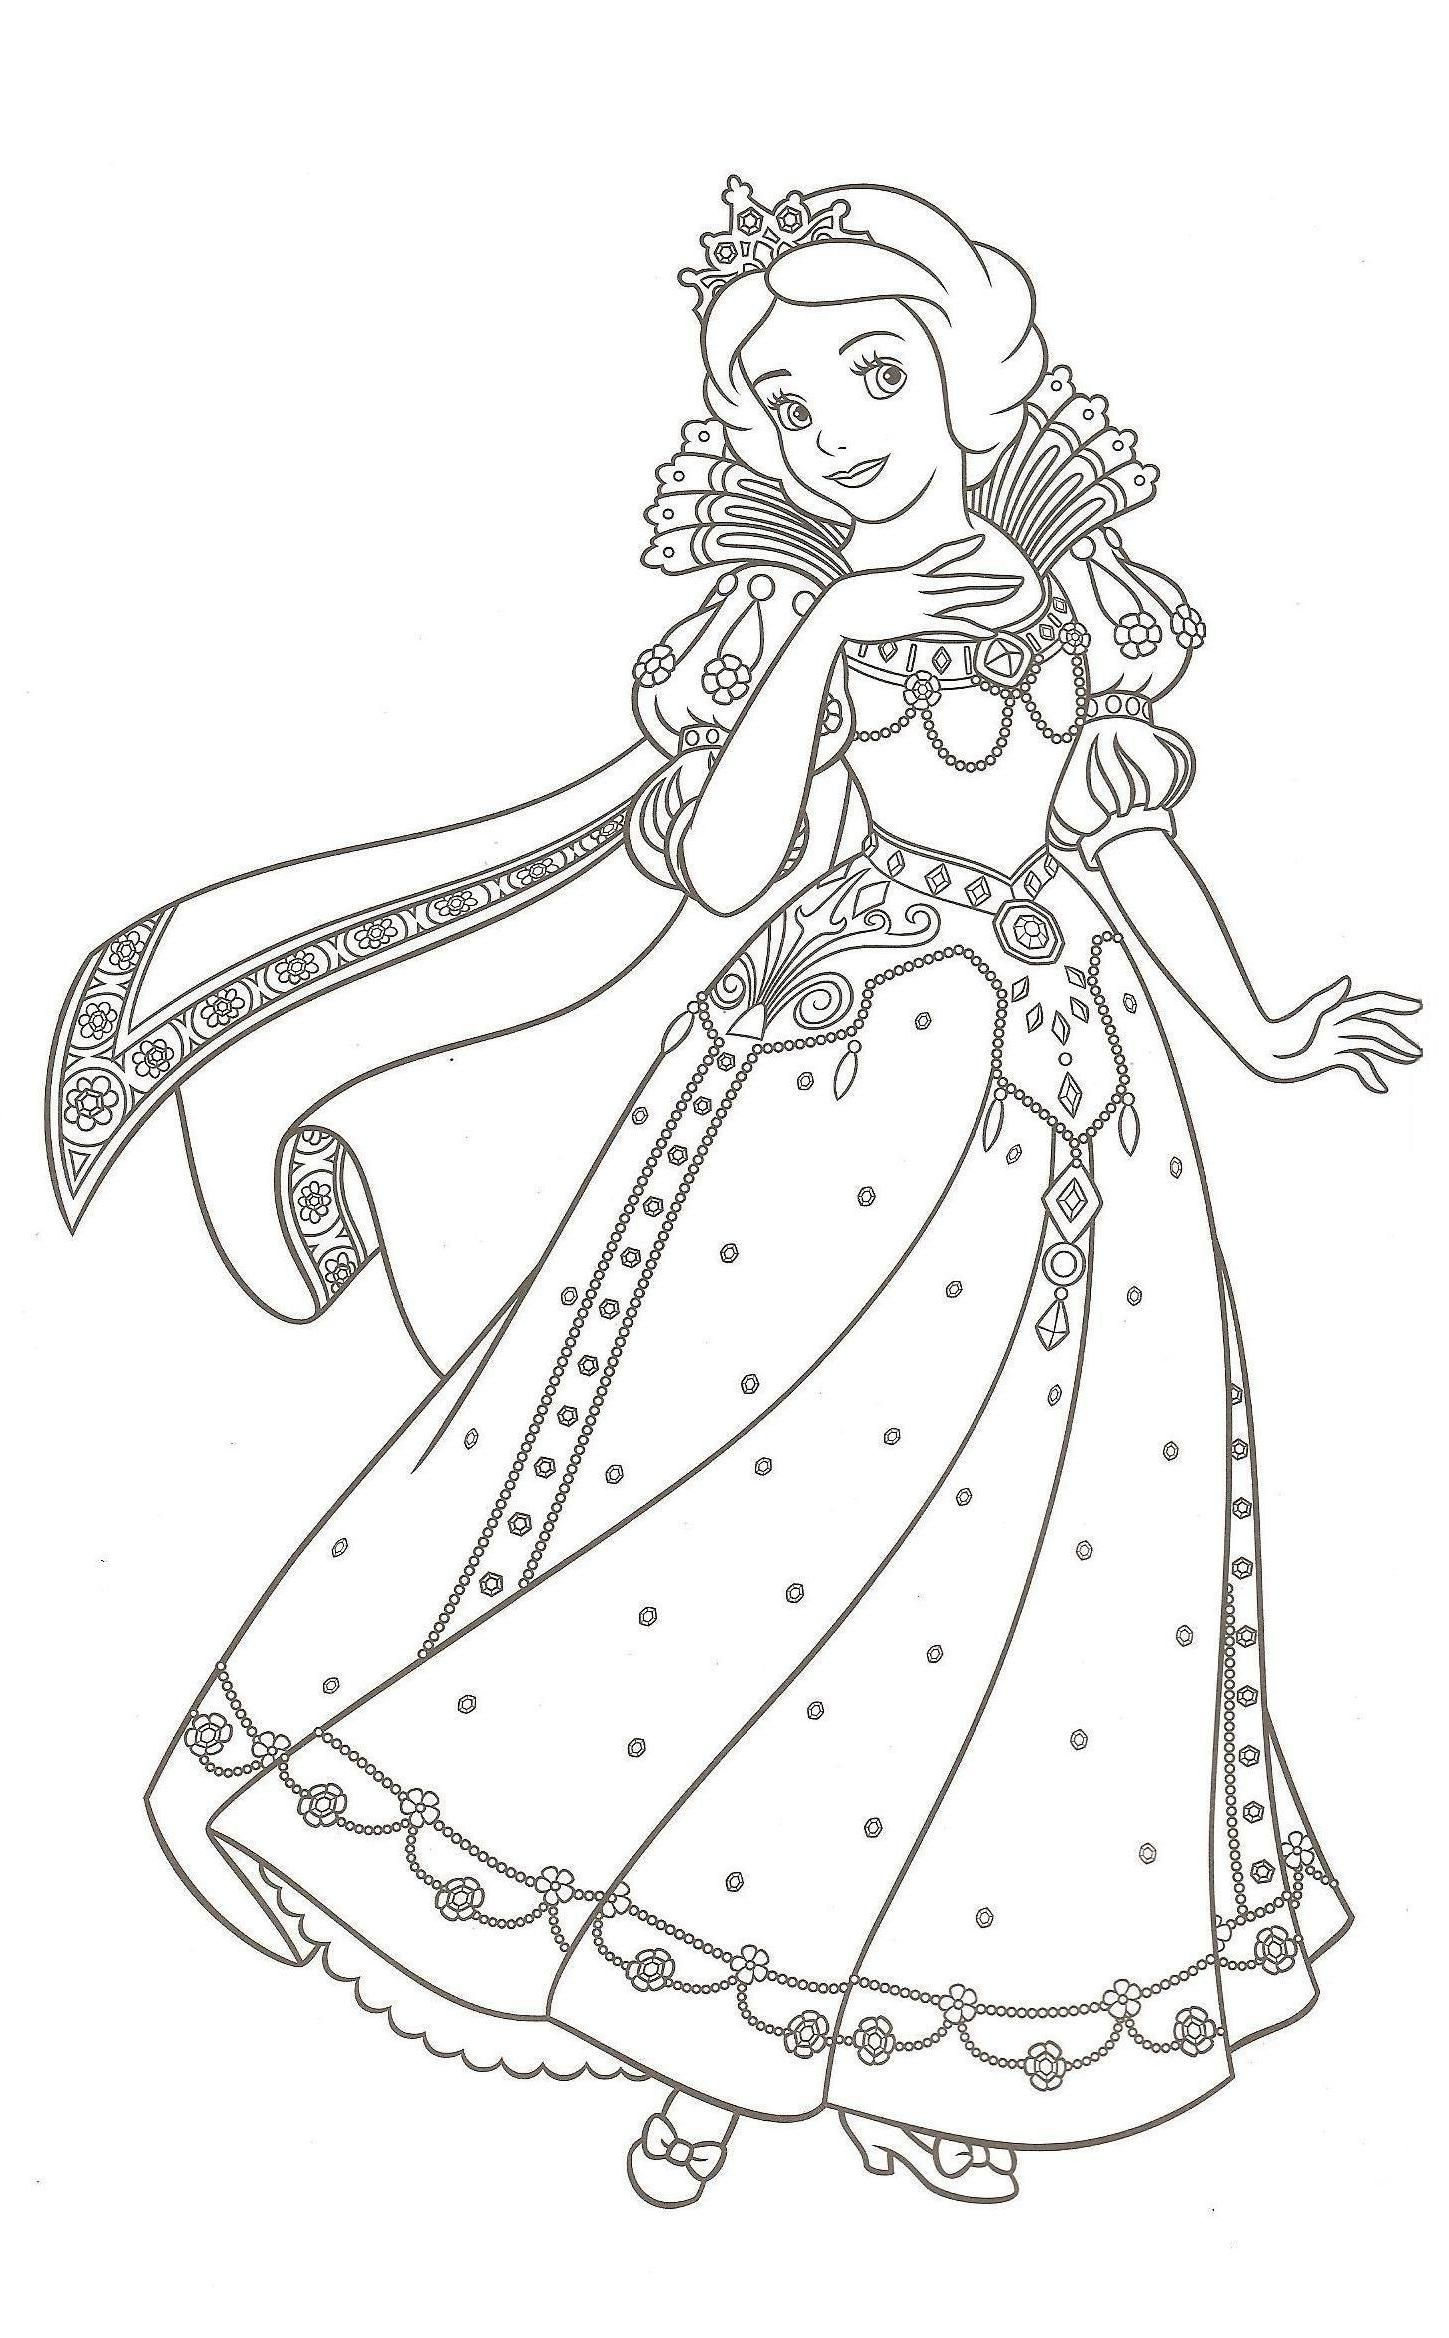 Coloriages disney princesses imprimer - Coloriages princesse ...